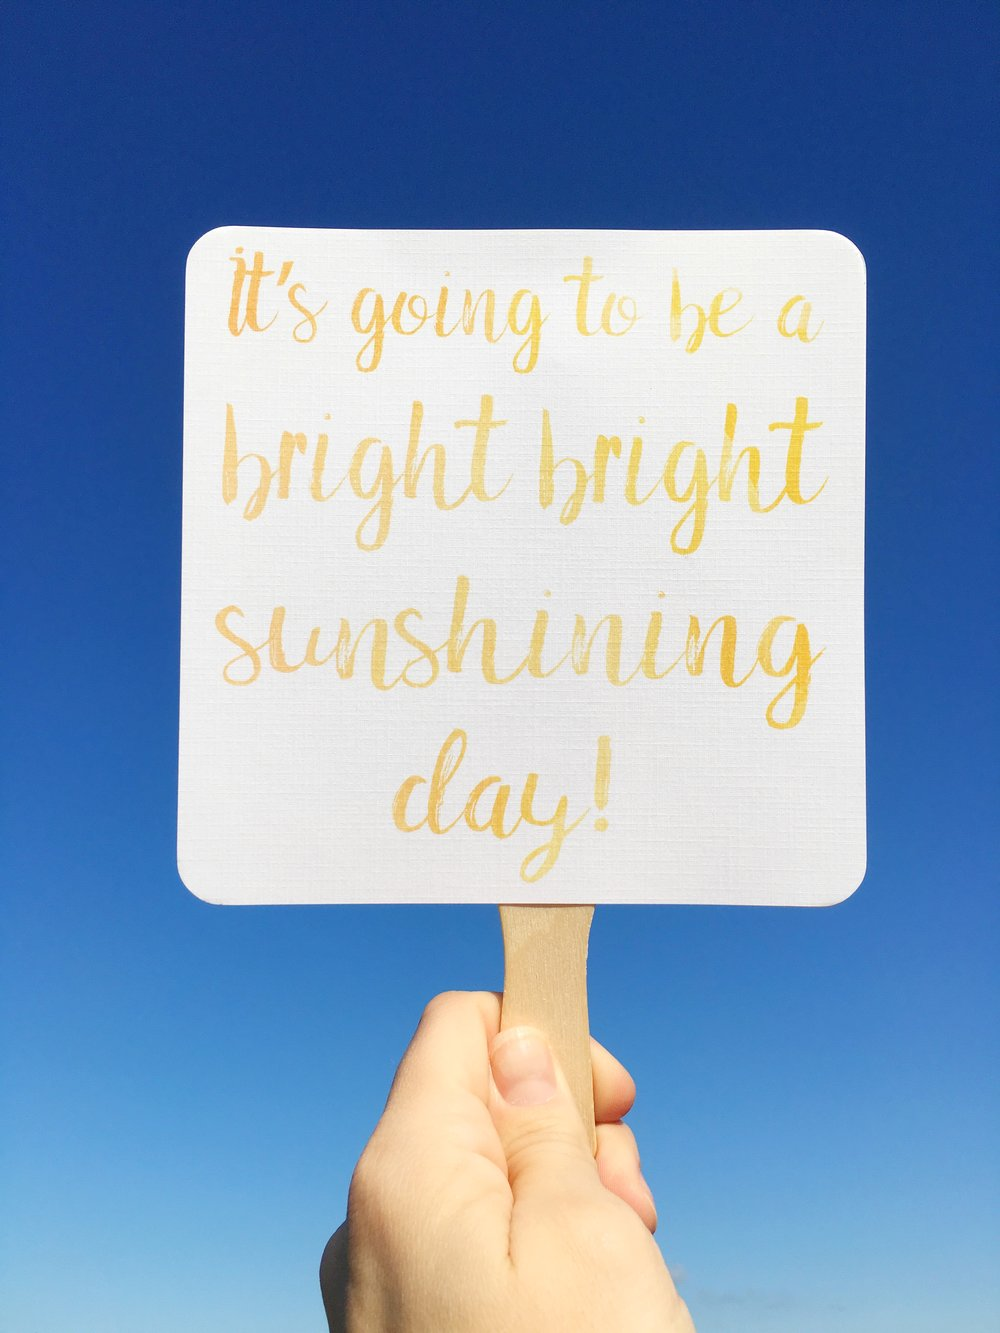 Central PA, York PA, JesSmith Designs, custom, wedding, invitations, bridal, announcements, save the date, baby, hanover, calligraphy, baltimore, wedding invitations, lancaster, gettysburg-06-29 08.59.15.jpg